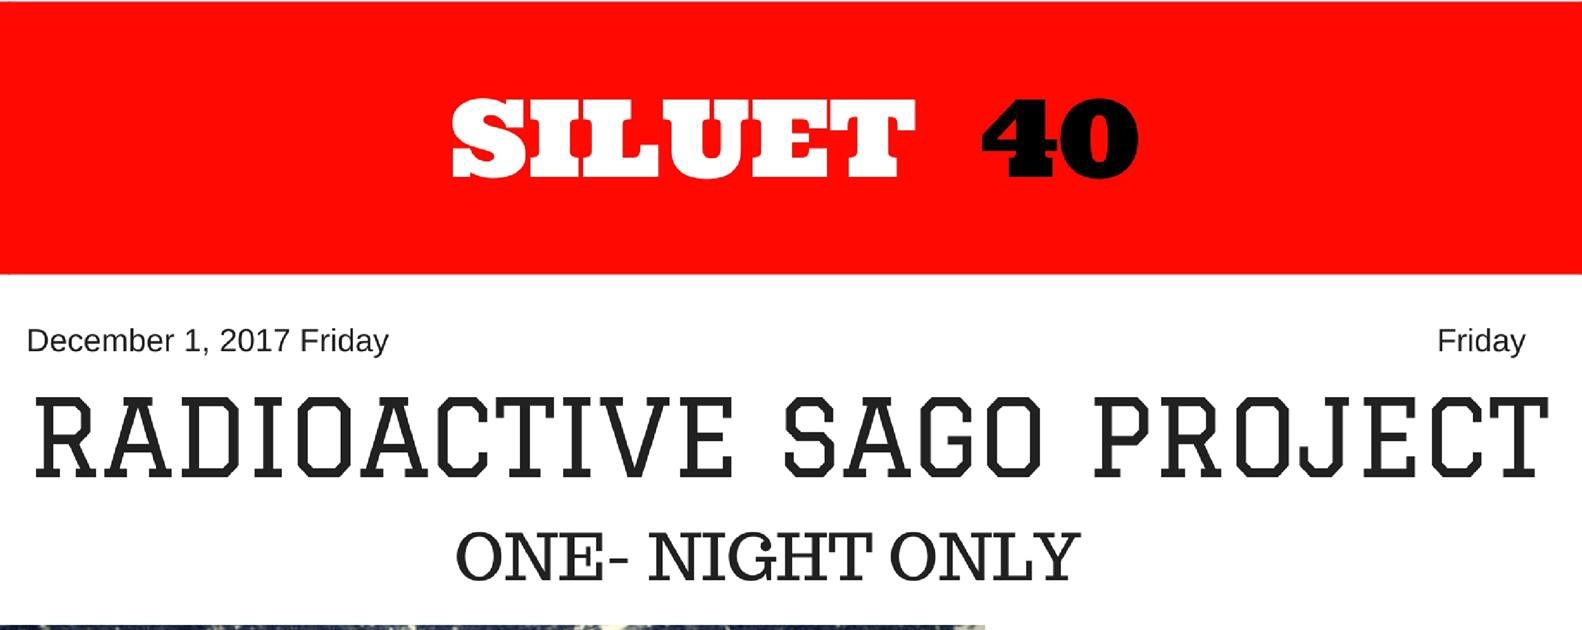 Siluet 40: Radioactive Sago Project (One-Night Only)